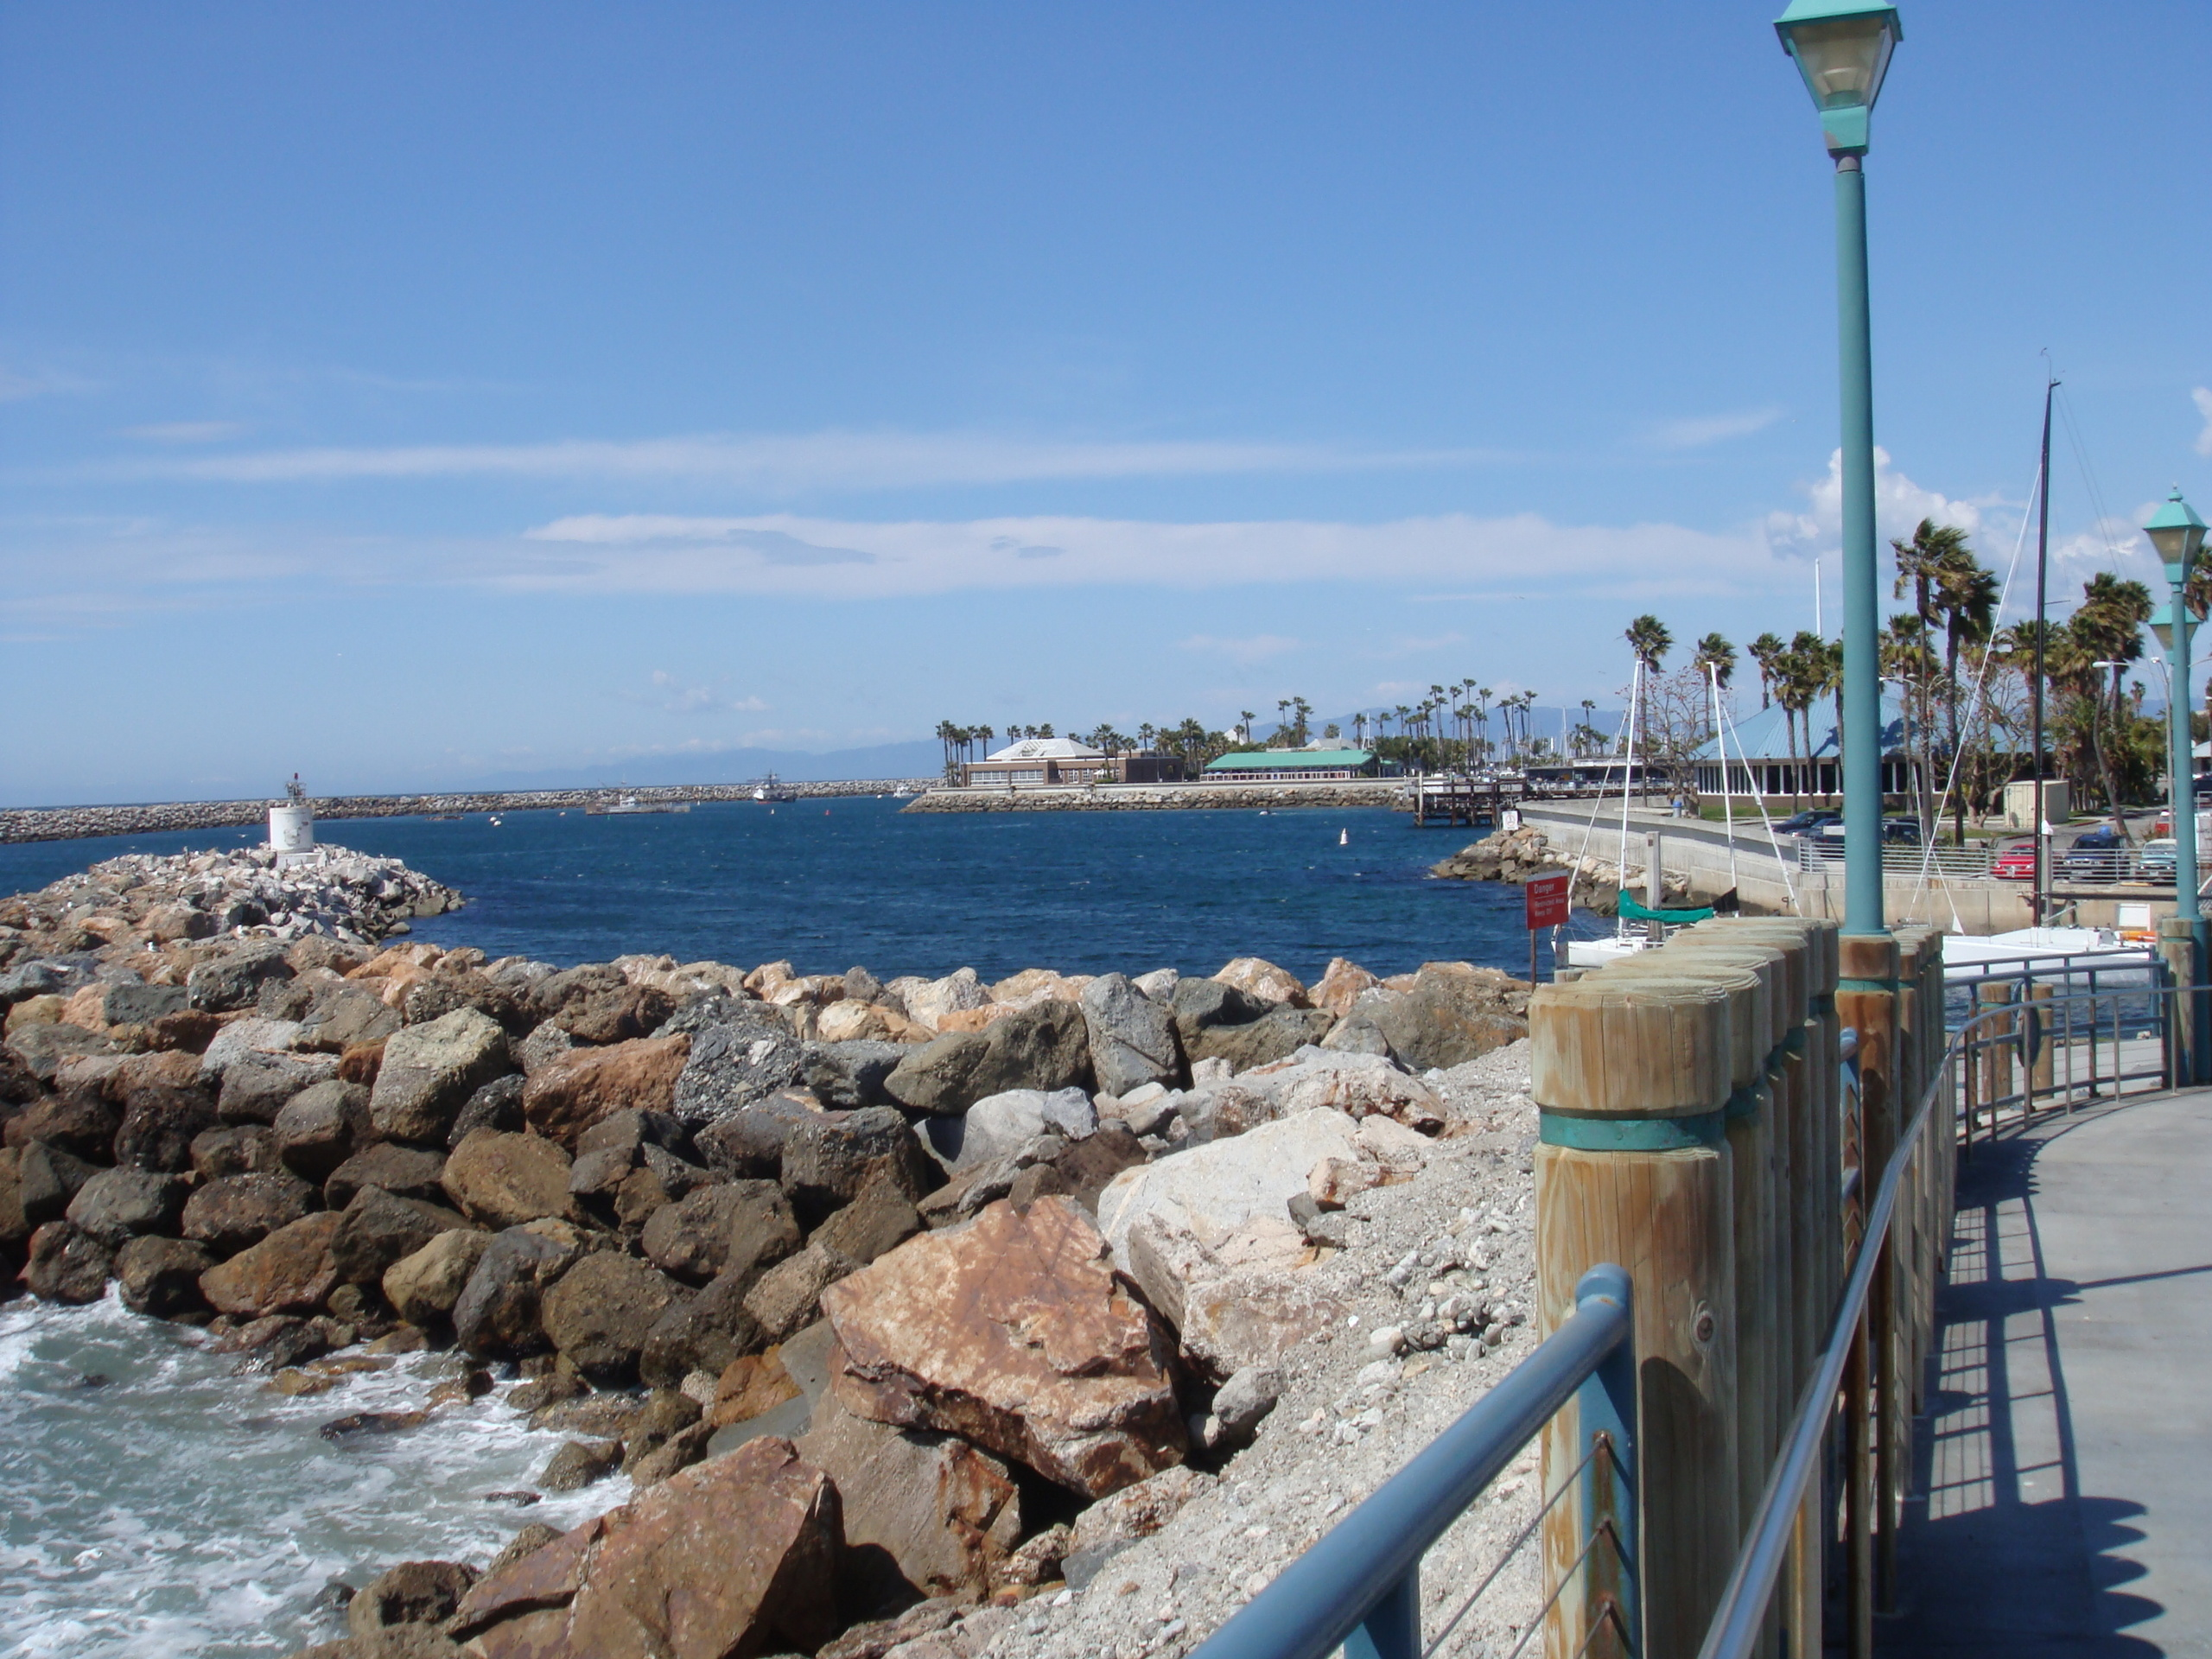 Redondo Beach CA - Pictures, posters, news and videos on ...